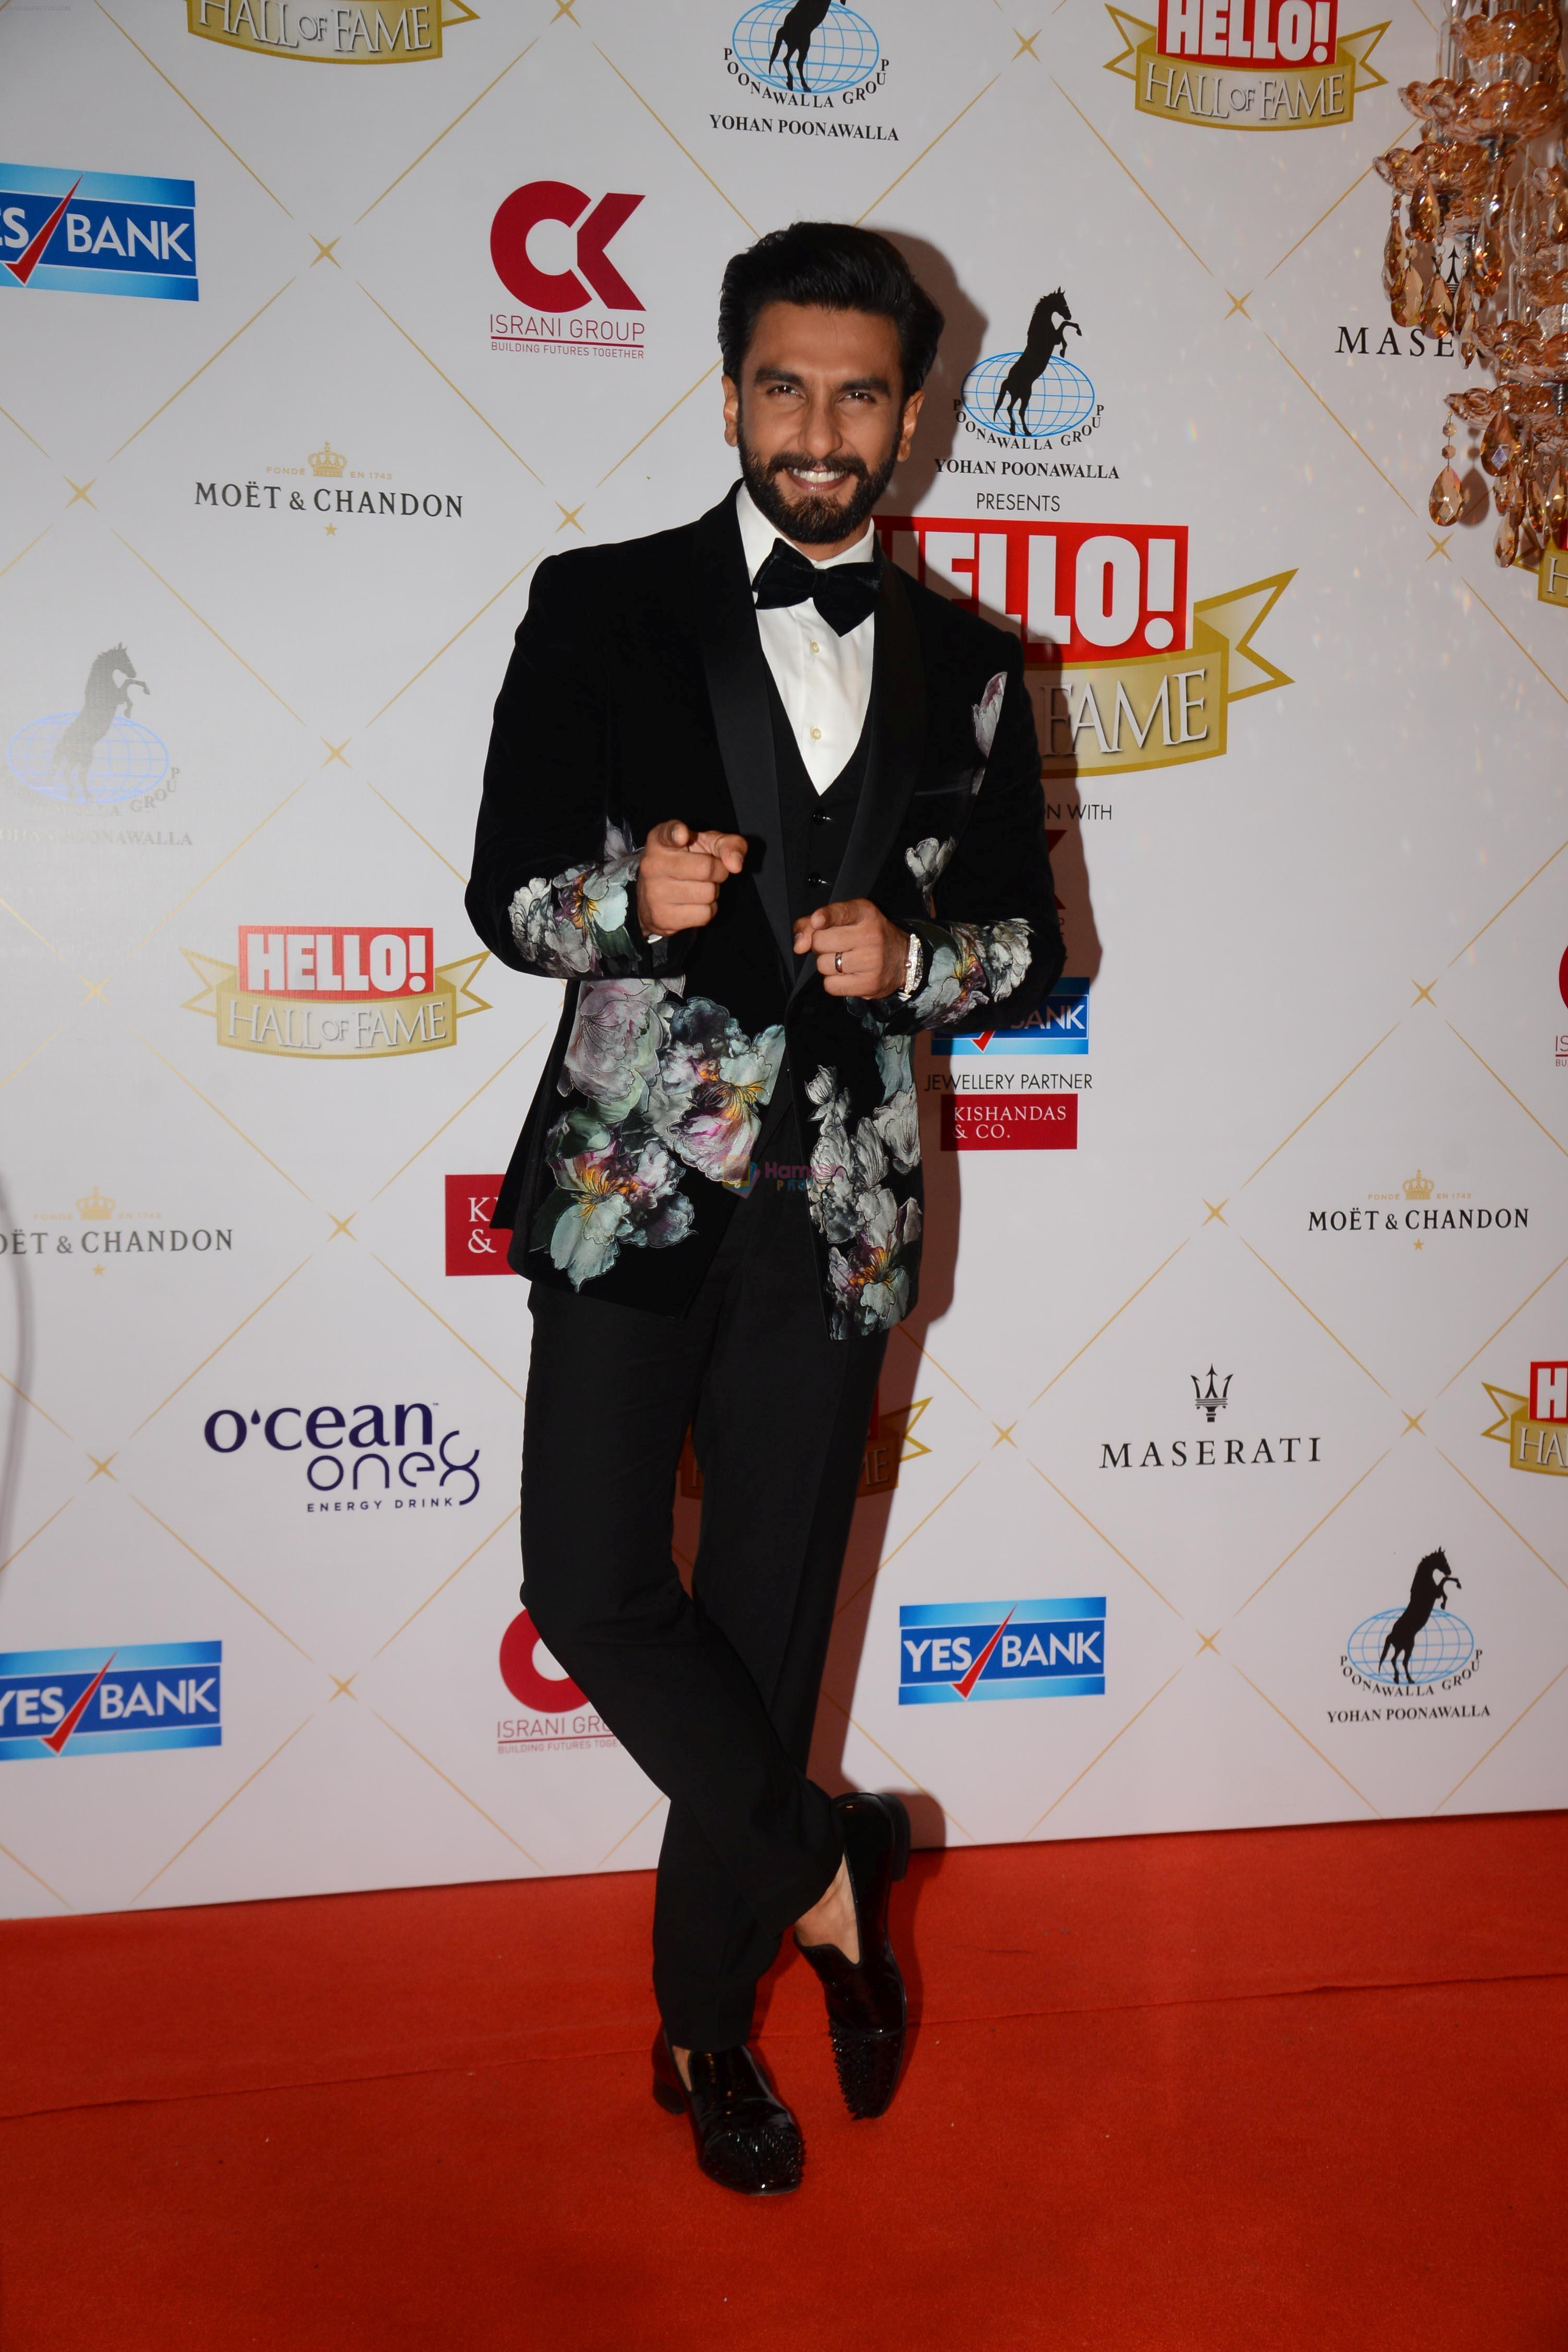 Ranveer Singh at the Hello Hall of Fame Awards in St Regis hotel on 18th March 2019